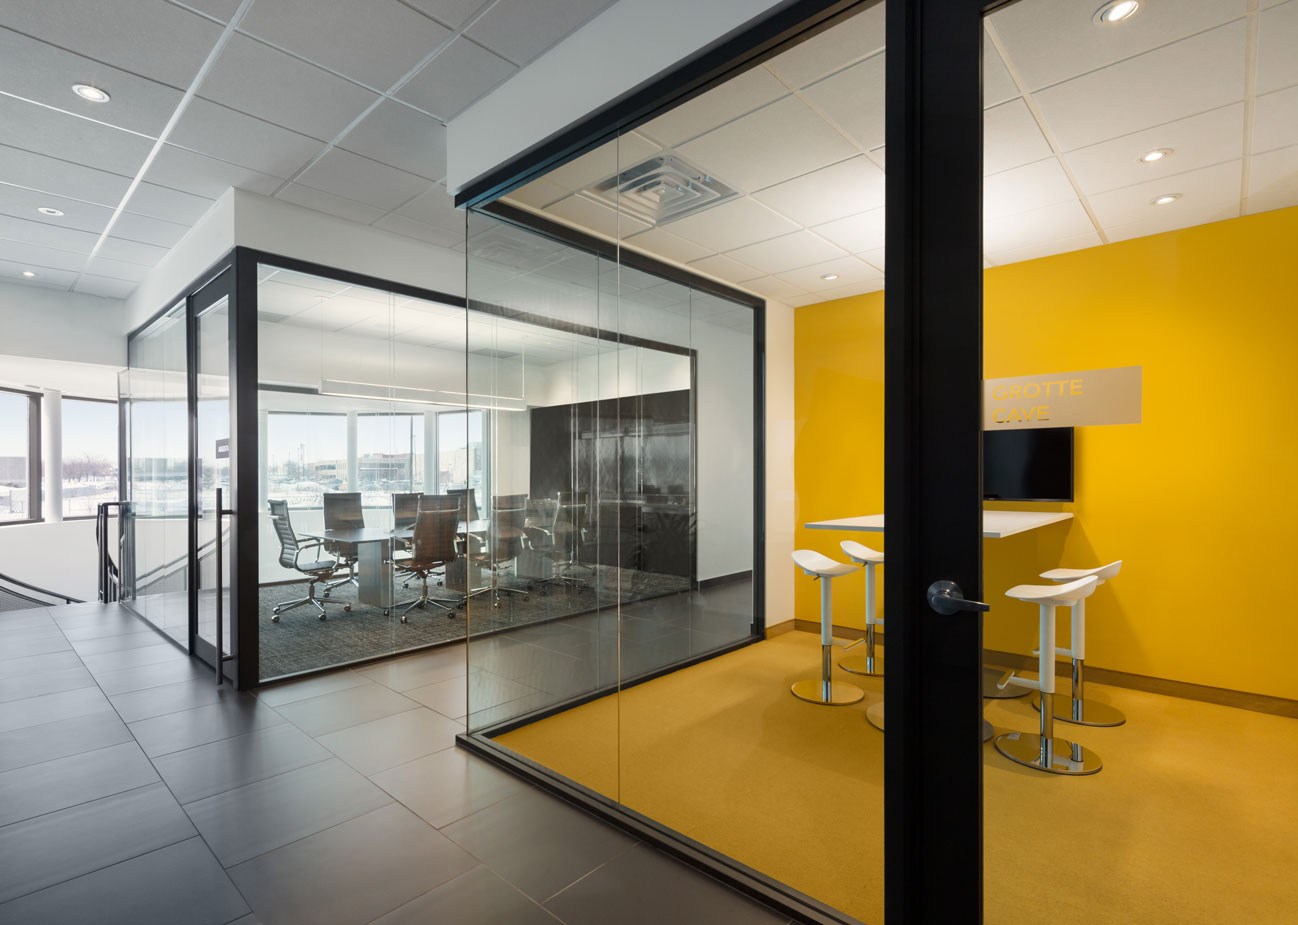 Glass cube meeting room with yellow floor and wall and formal neutral colored meeting room in background.